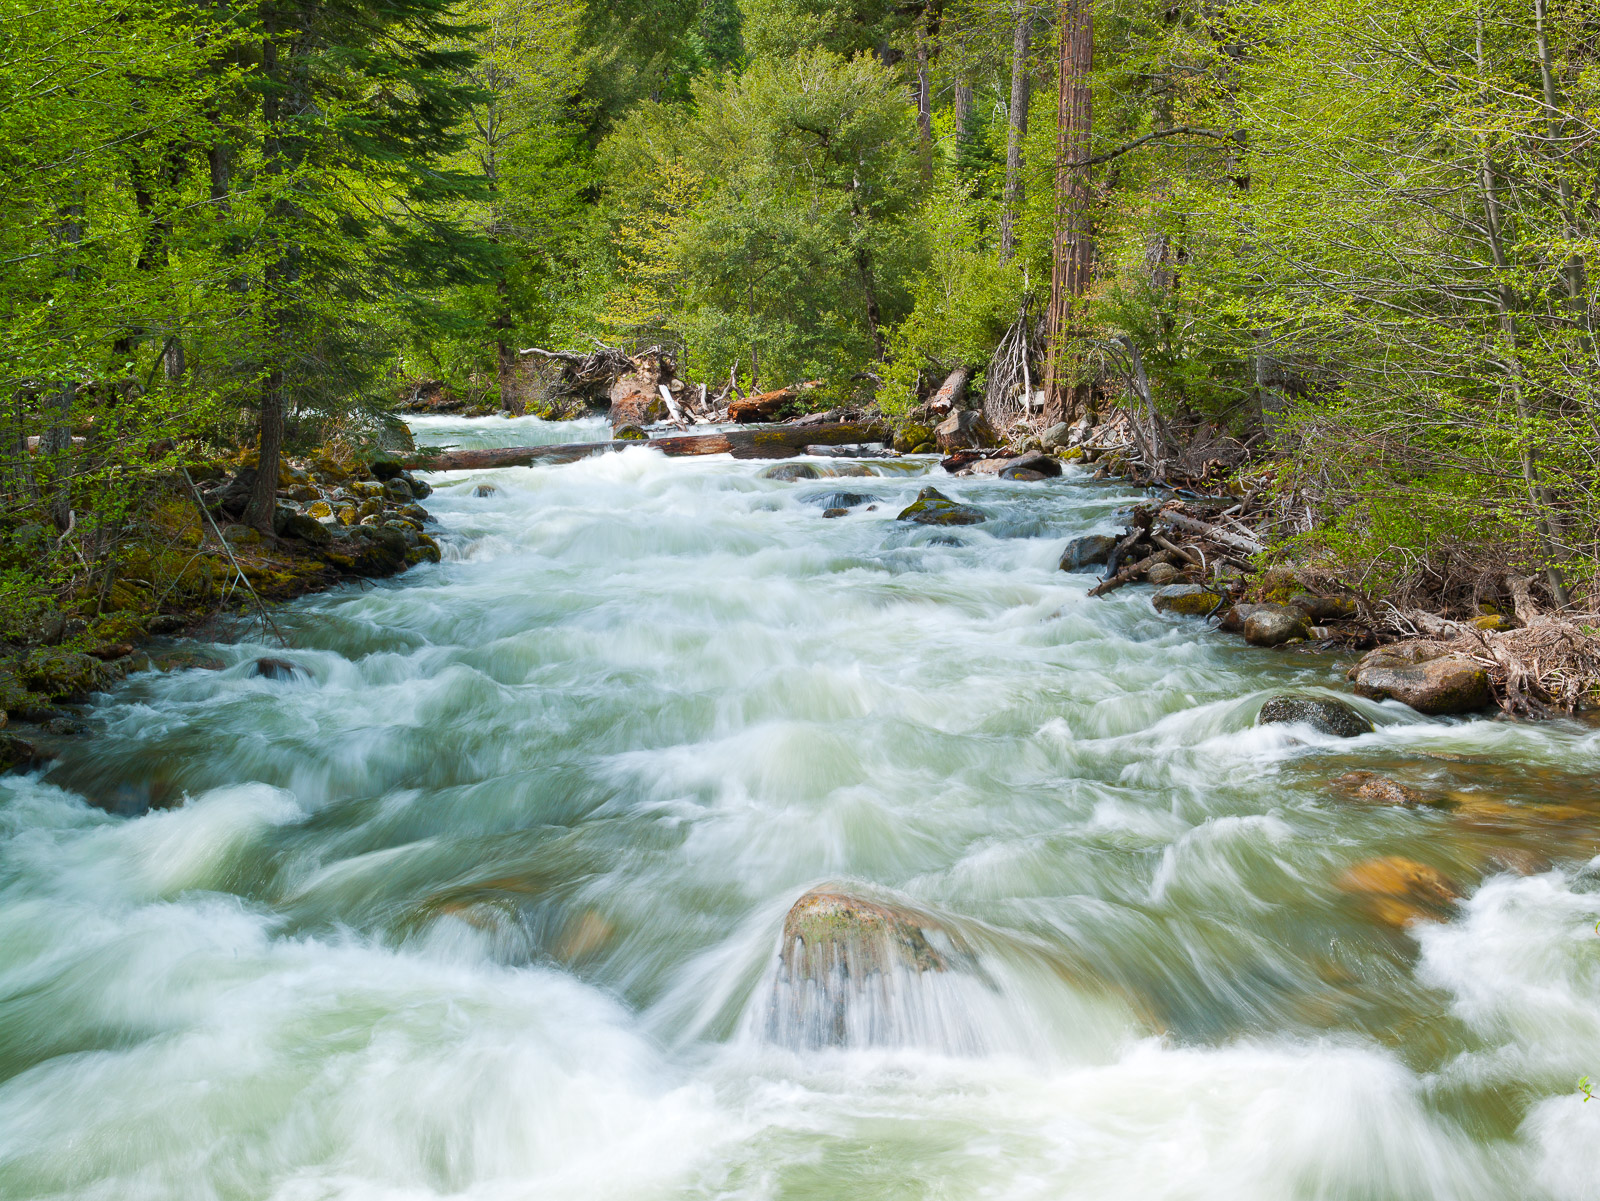 Rushing spring waters of the Merced River within Yosemite National Park.